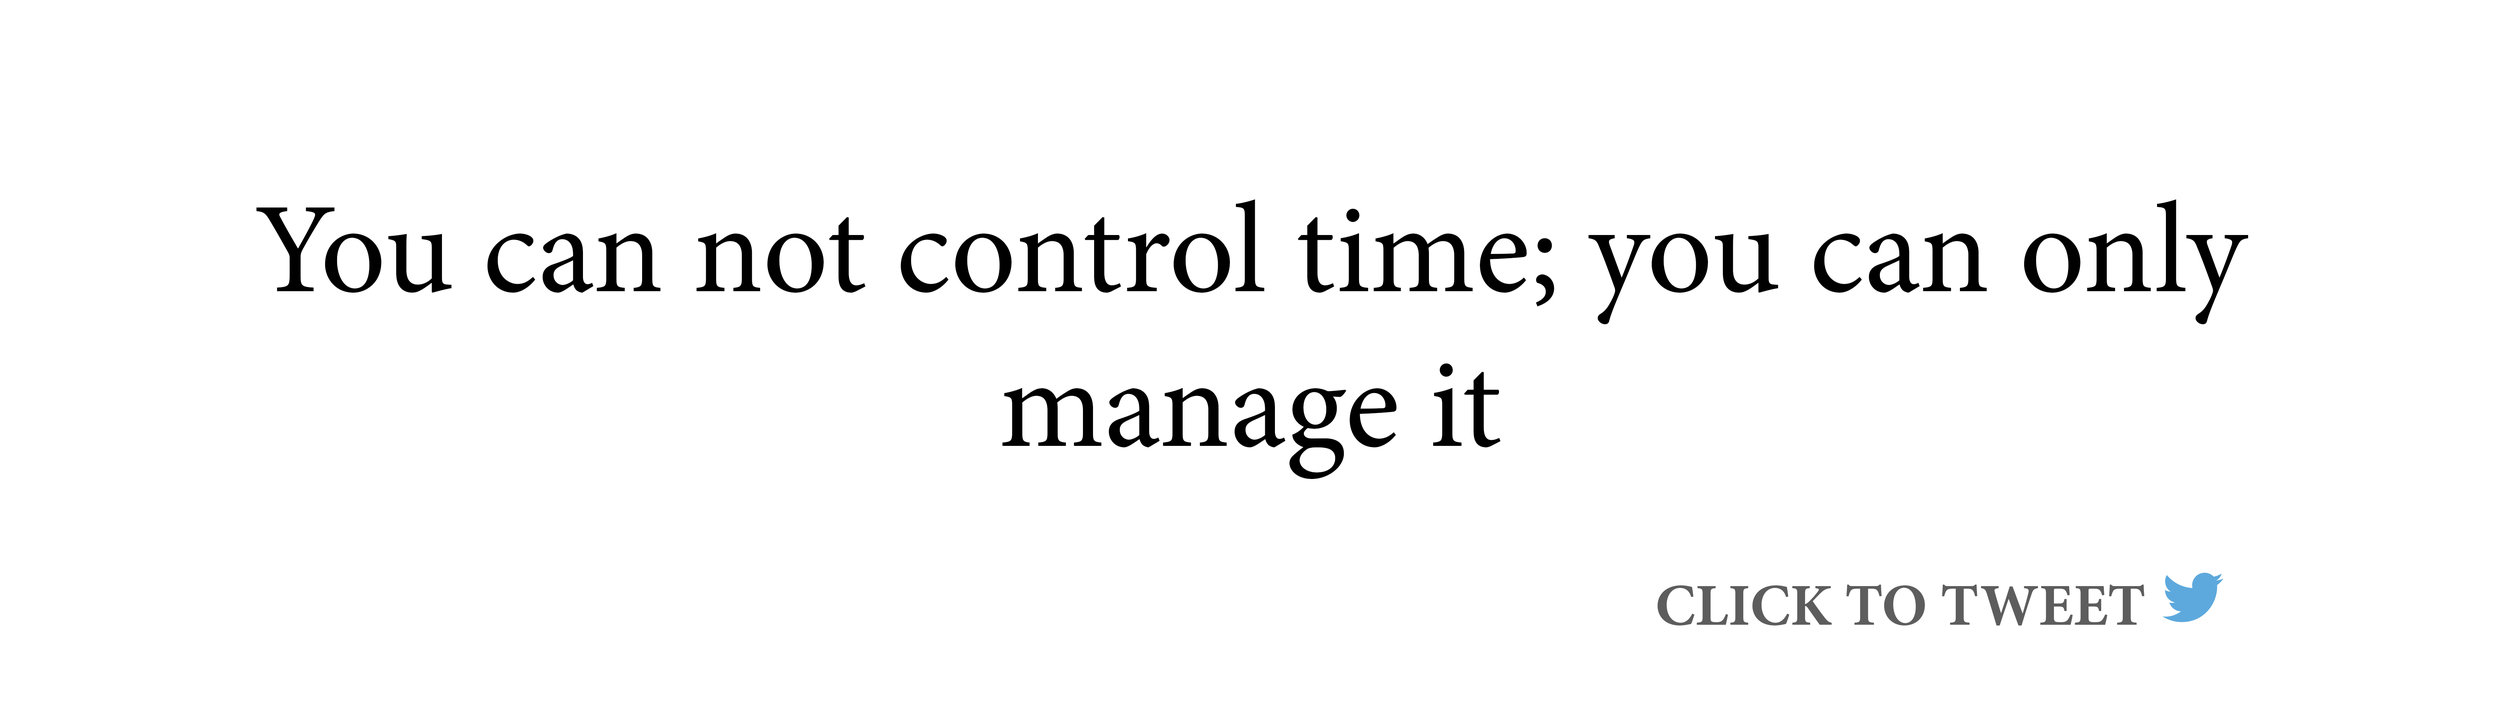 why-timing-is-everything-you-can-not-control-time-you-can-only-manage-it.jpg